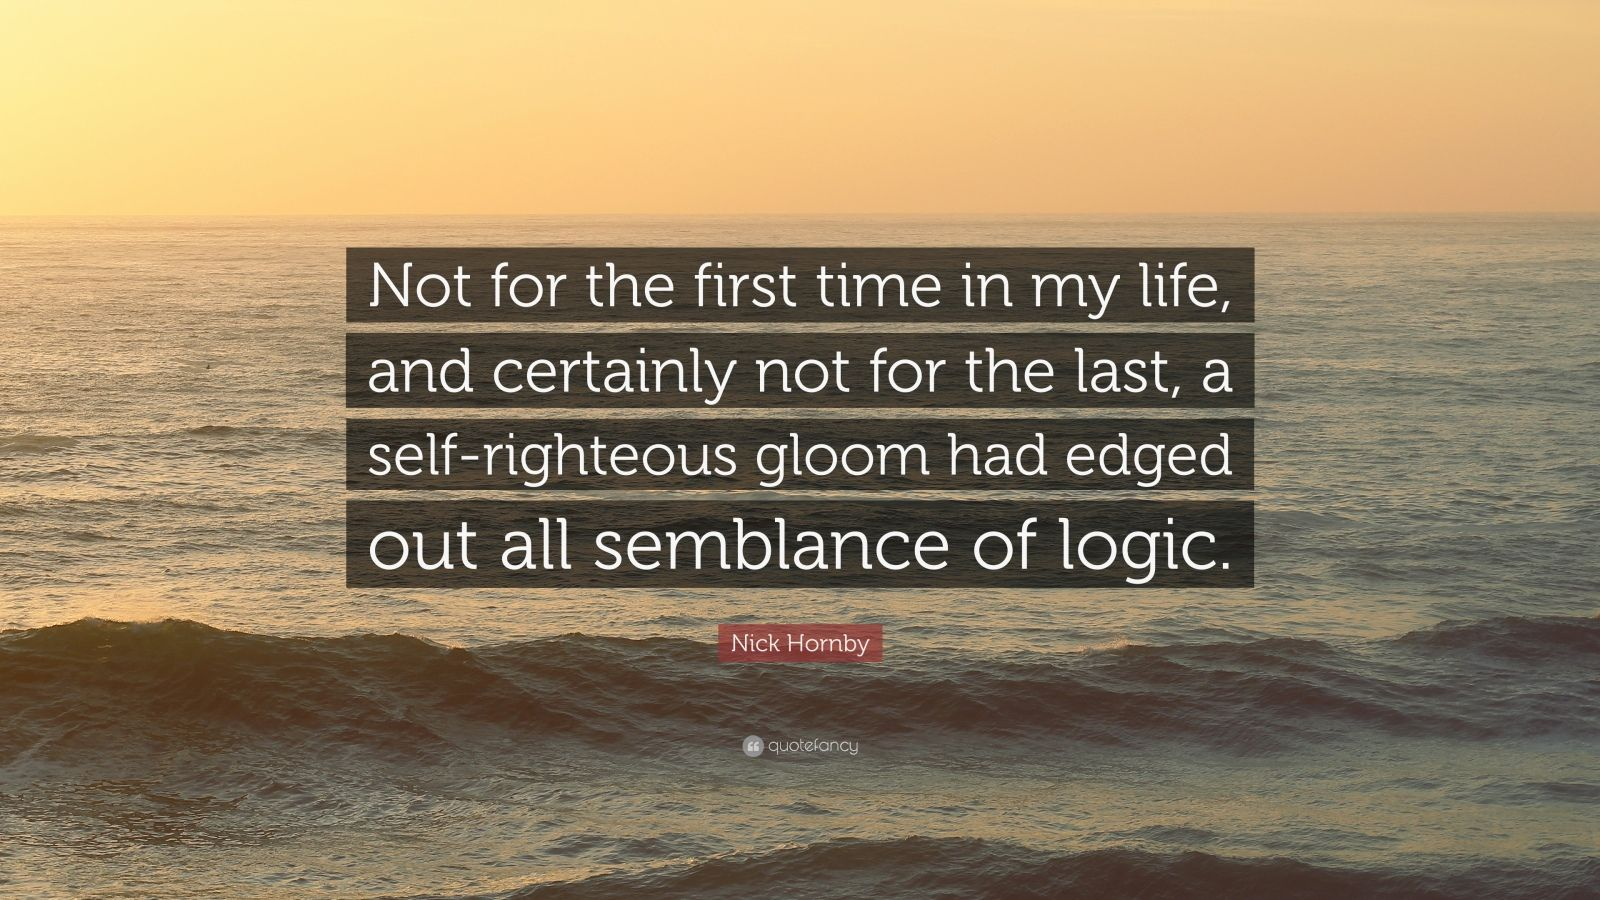 """Nick Hornby Quote: """"Not for the first time in my life, and certainly not for the last, a self-righteous gloom had edged out all semblance of logic."""""""